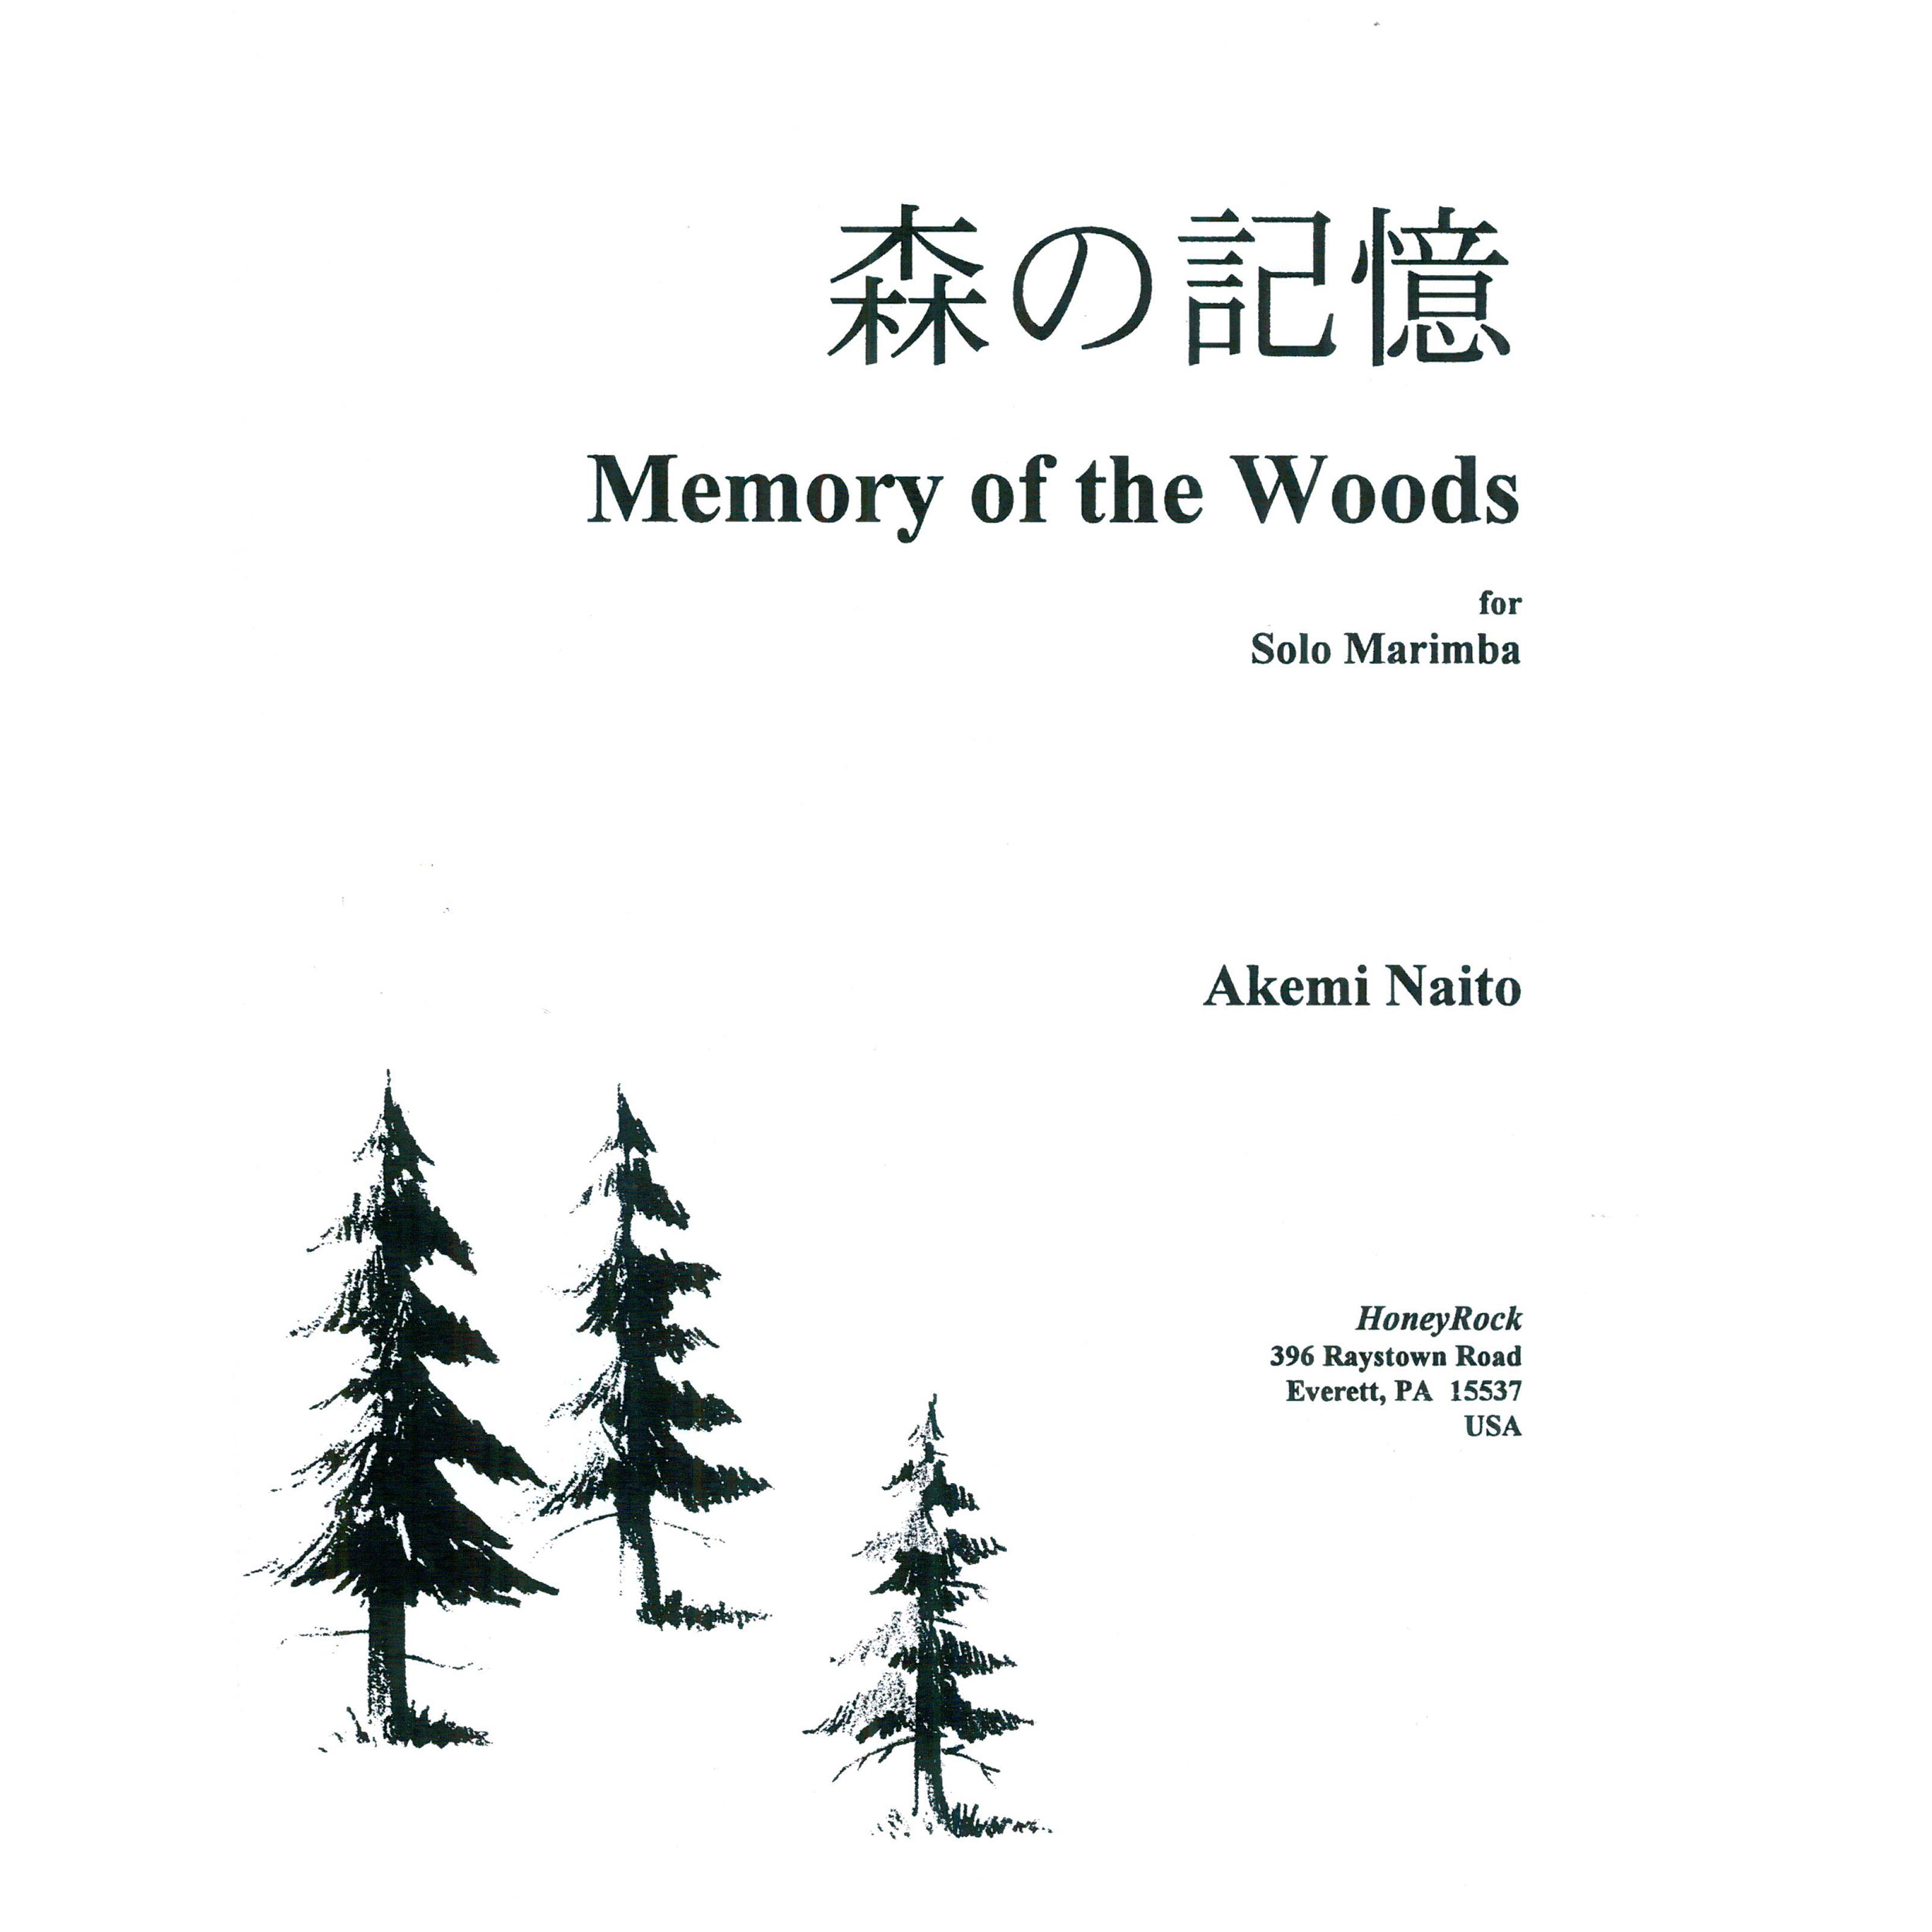 Memory of the Woods by Akemi Naito